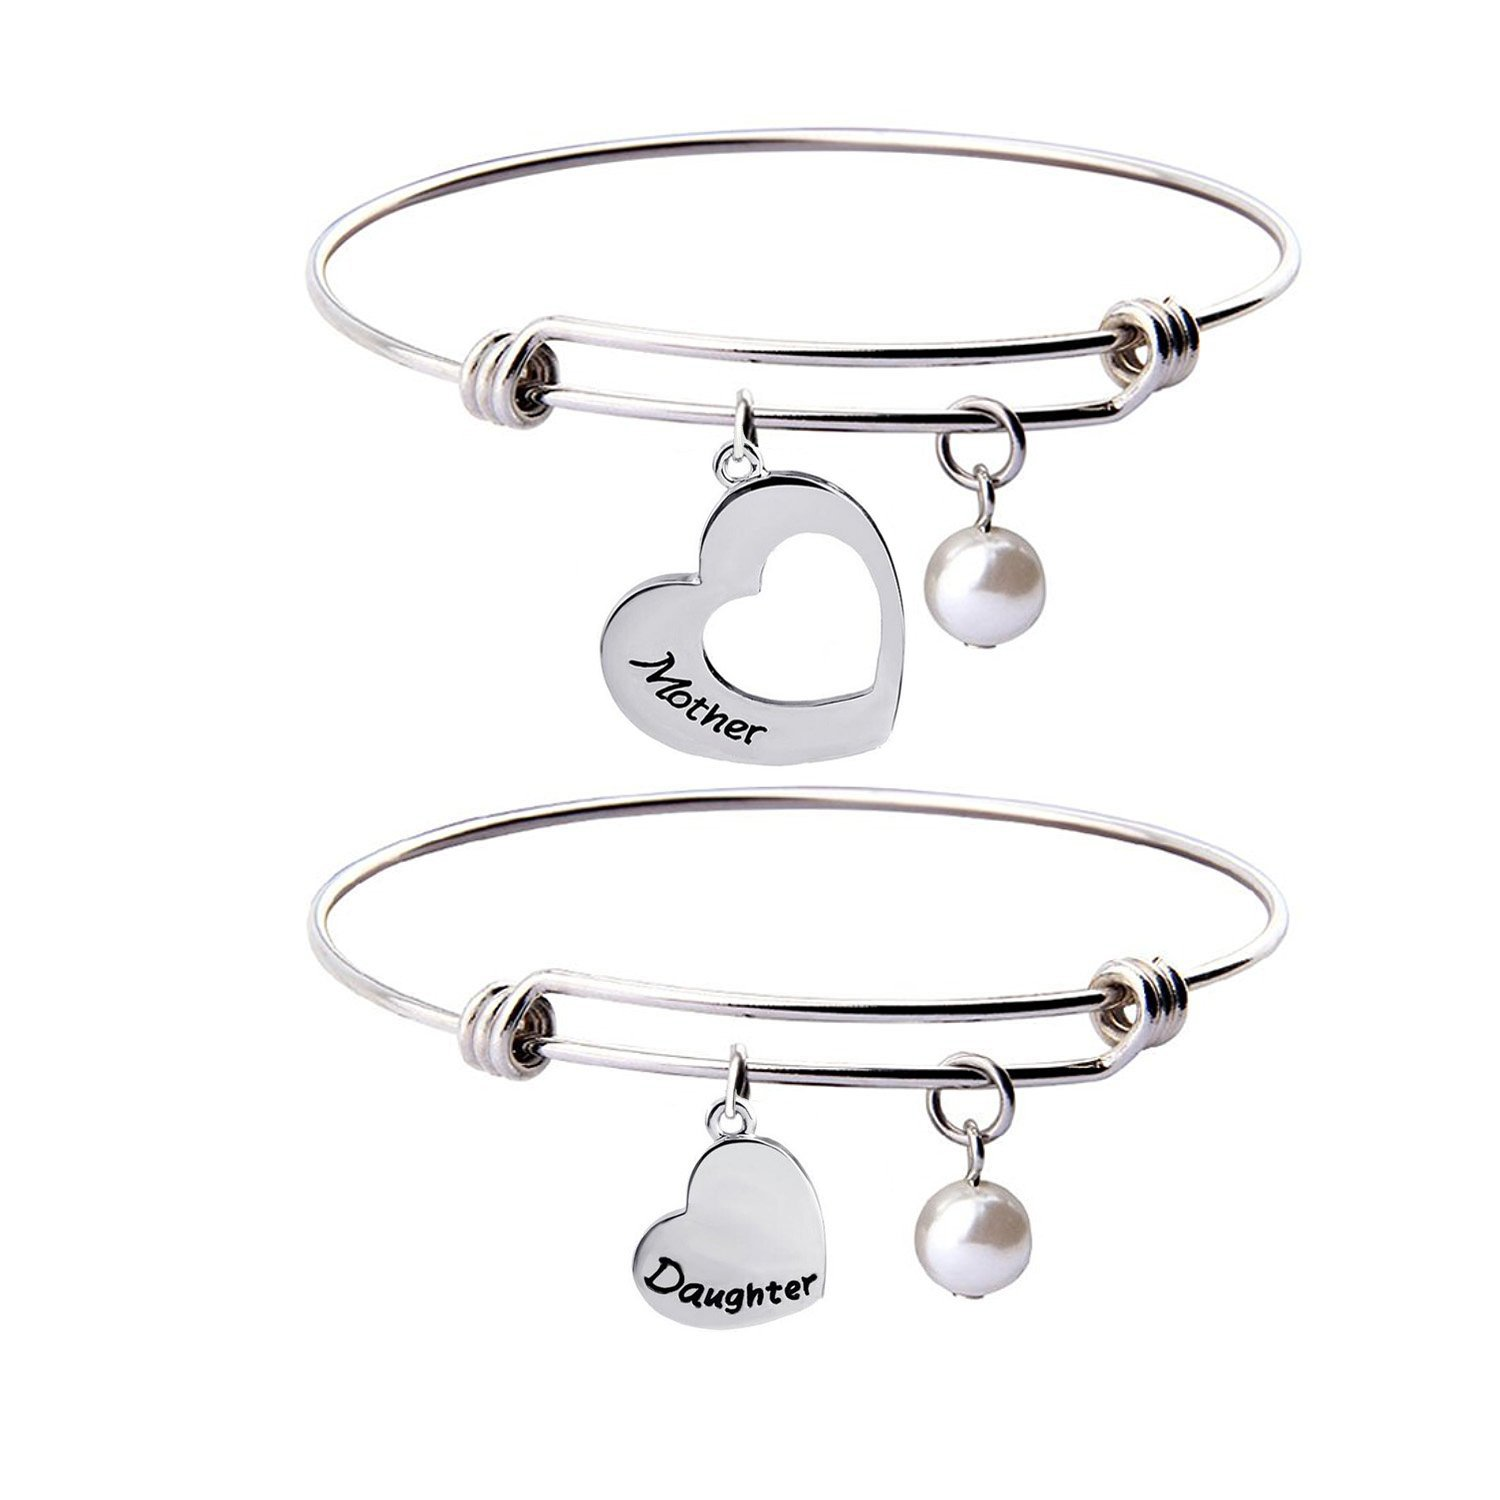 KUIYAI Mother Daughter Bracelet Set of 2 Matching Heart Mom and Me Jewelry (Mother daughter bangle set)